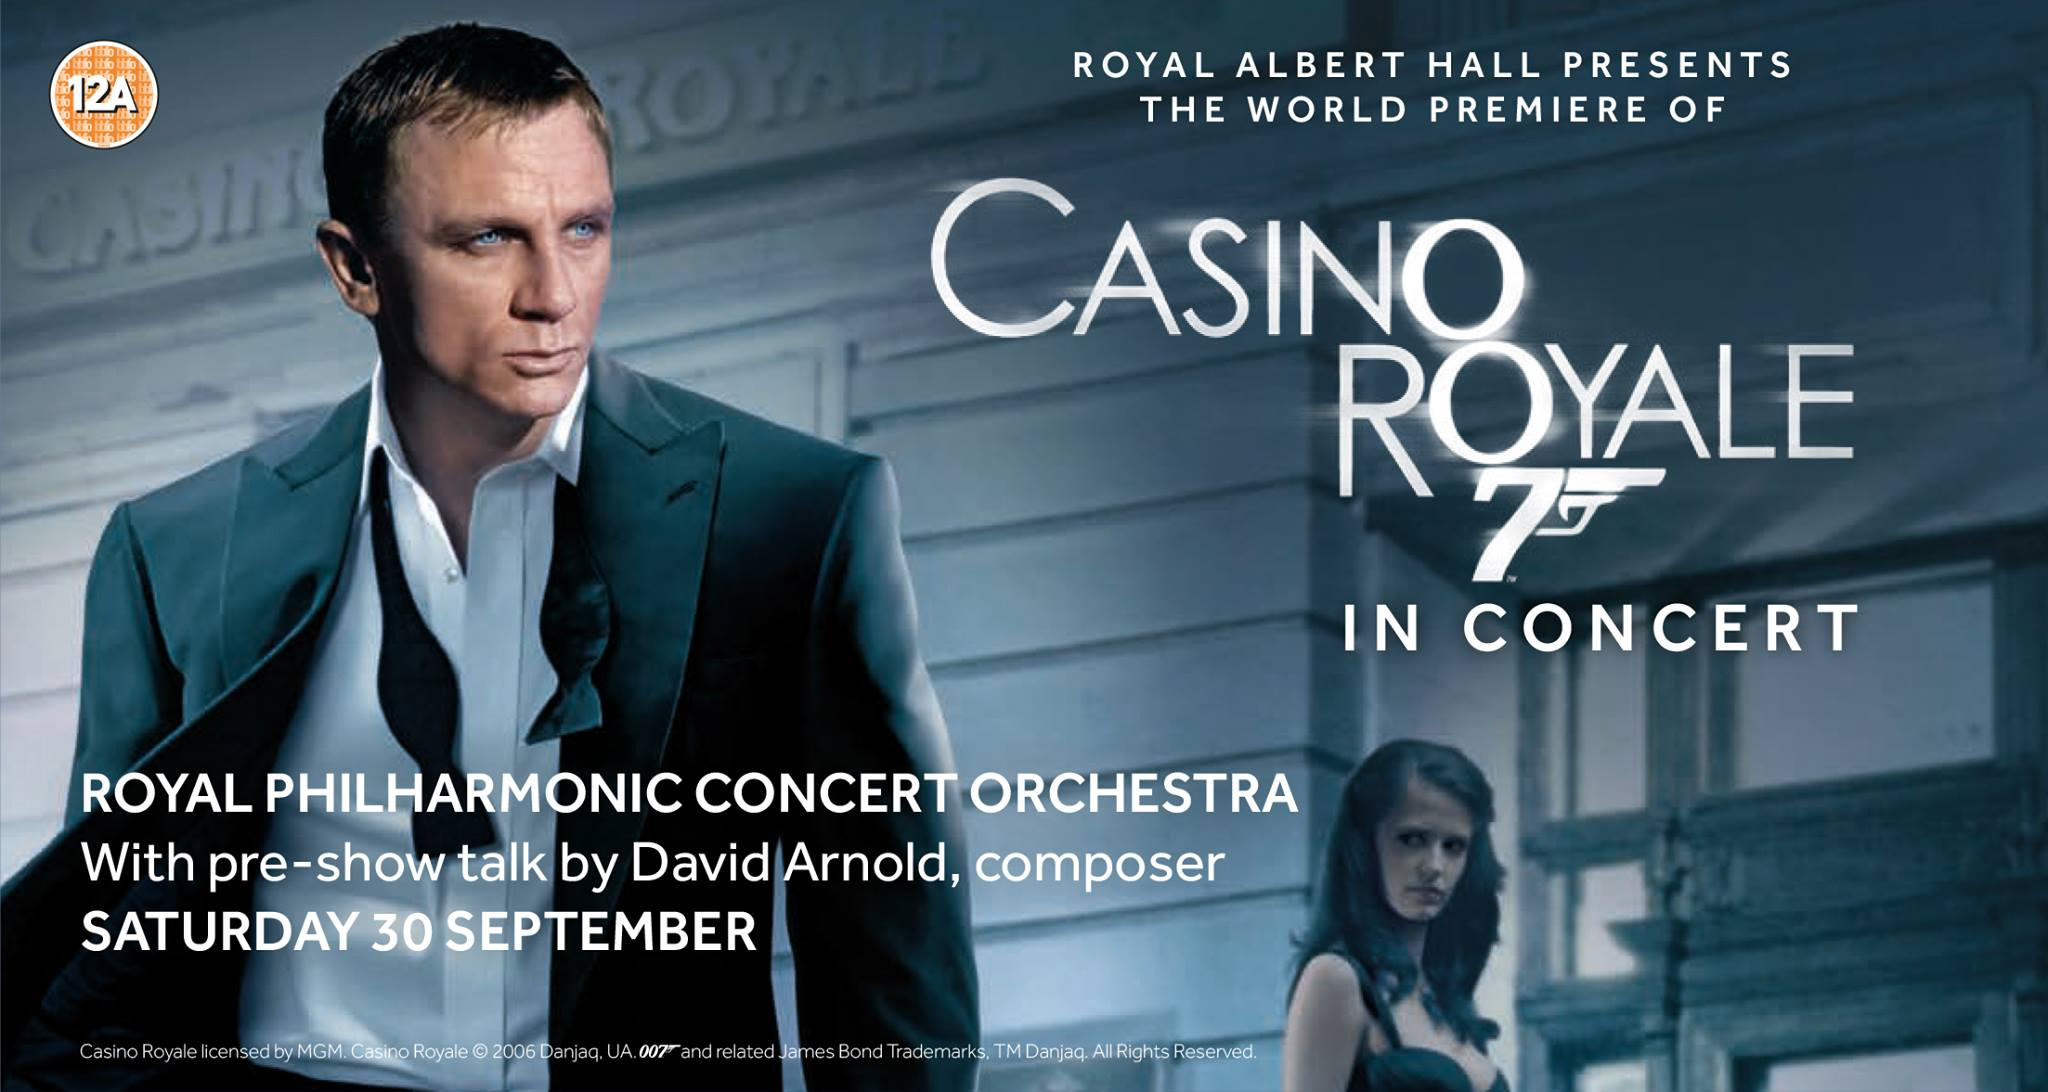 BWW Review: CASINO ROYALE IN CONCERT, Royal Albert Hall